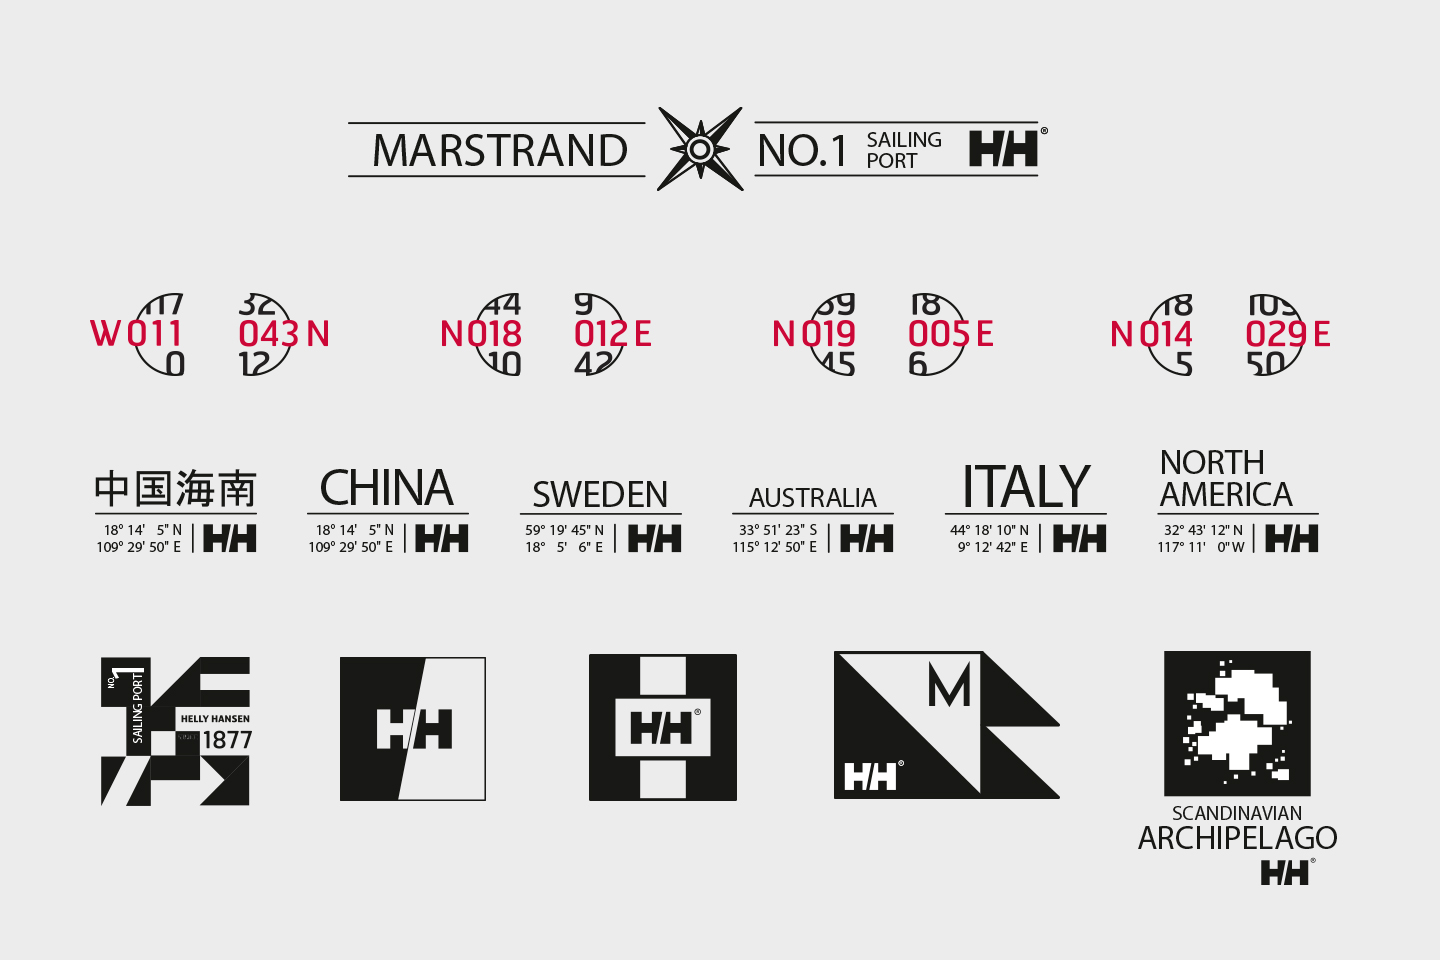 Helly Hansen graphics of marstrand sailing port. China, sweden, australia, italy and north america